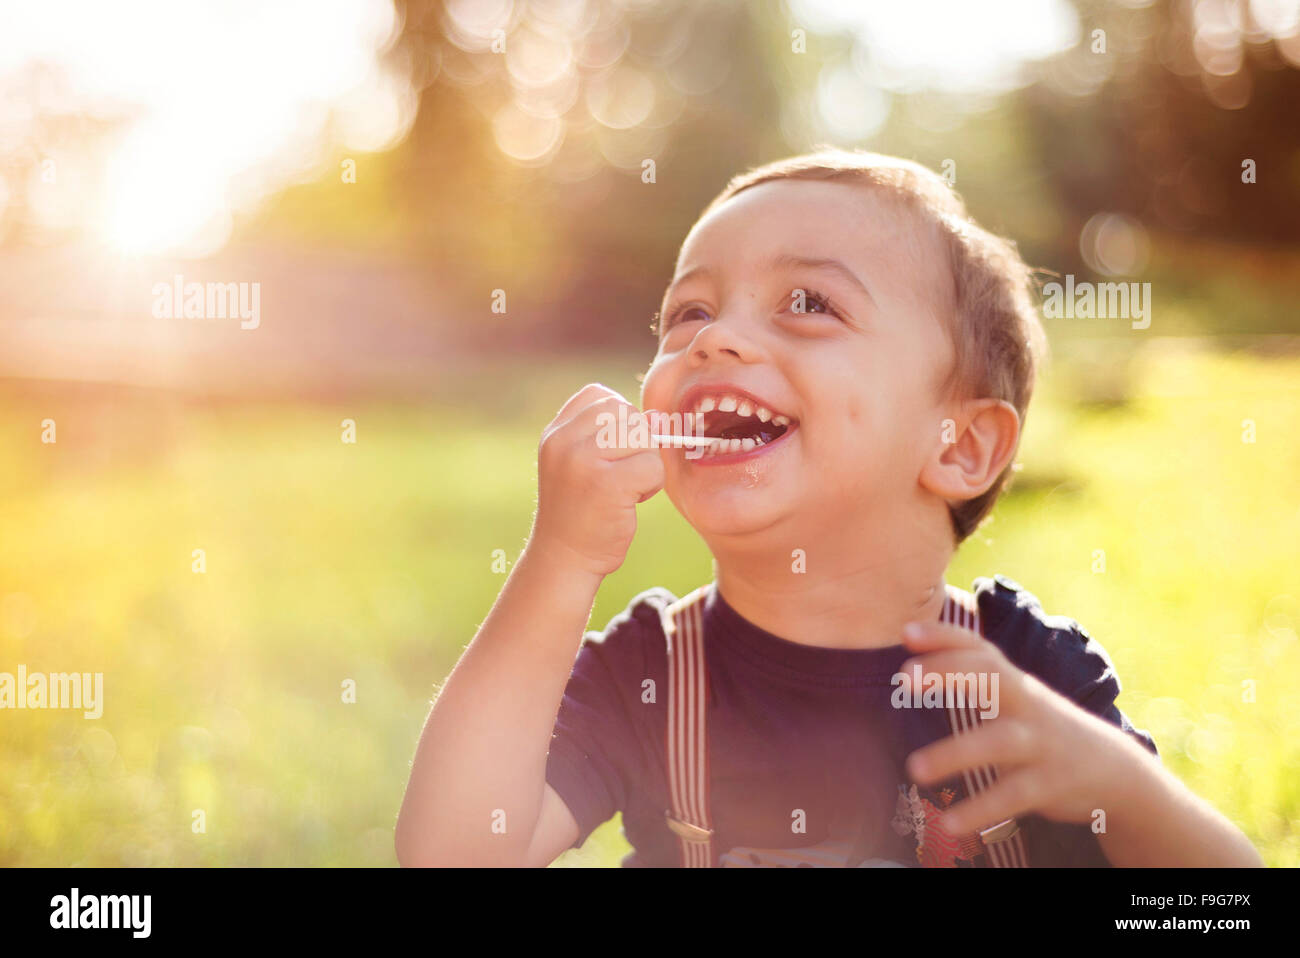 Cute little boy having fun outside in summer nature - Stock Image